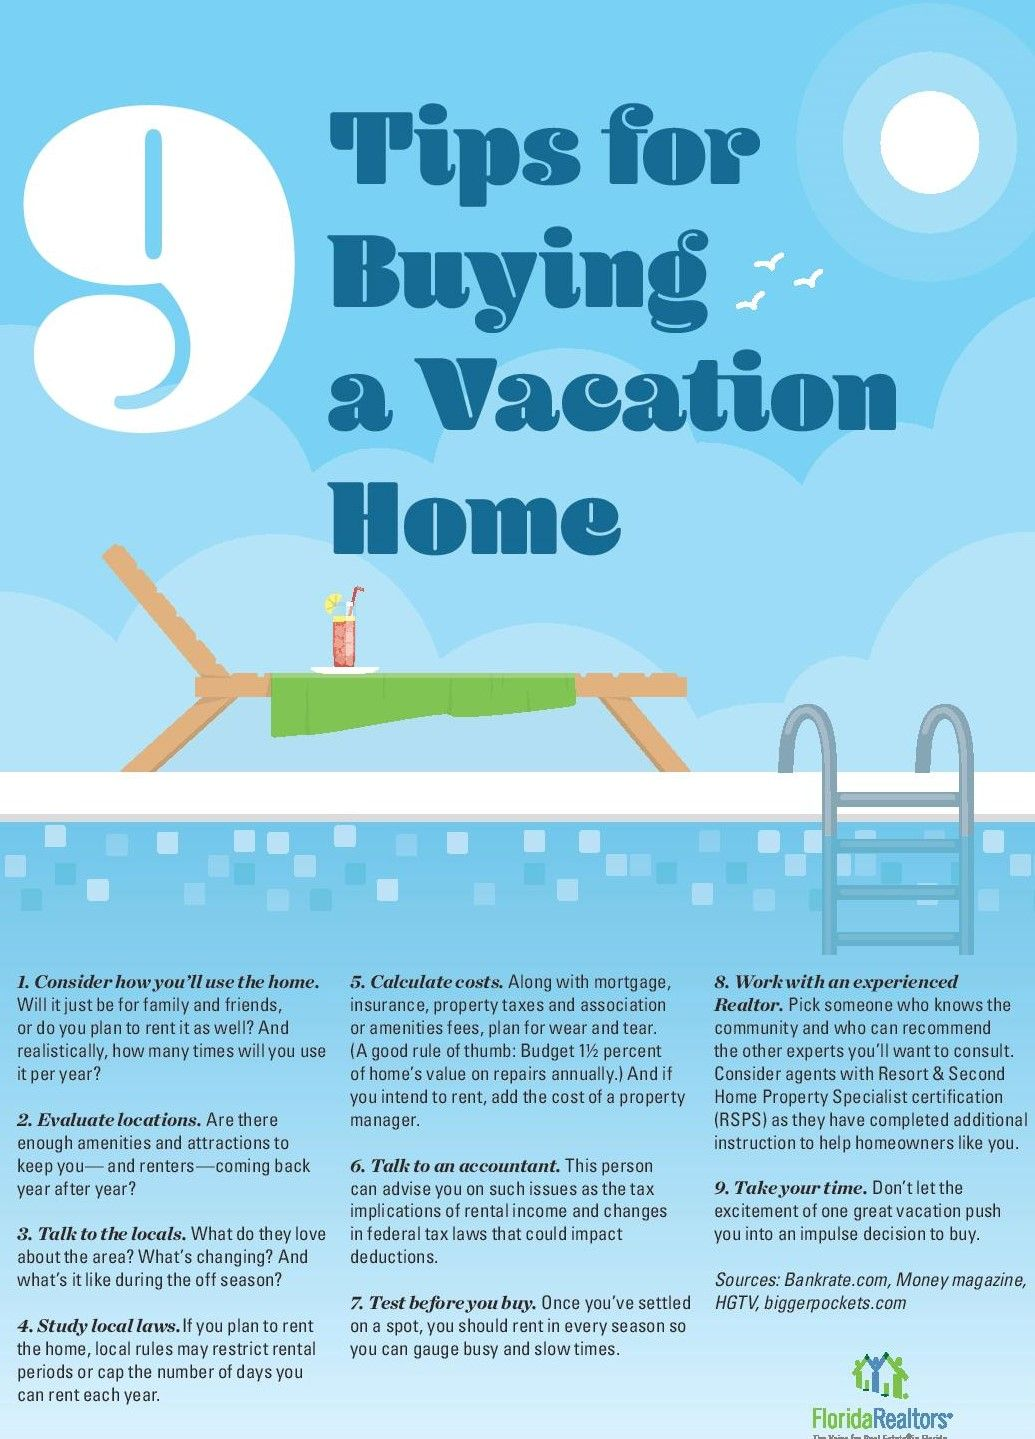 Considering Buying A Vacation Home Check Out These 9 Tips To